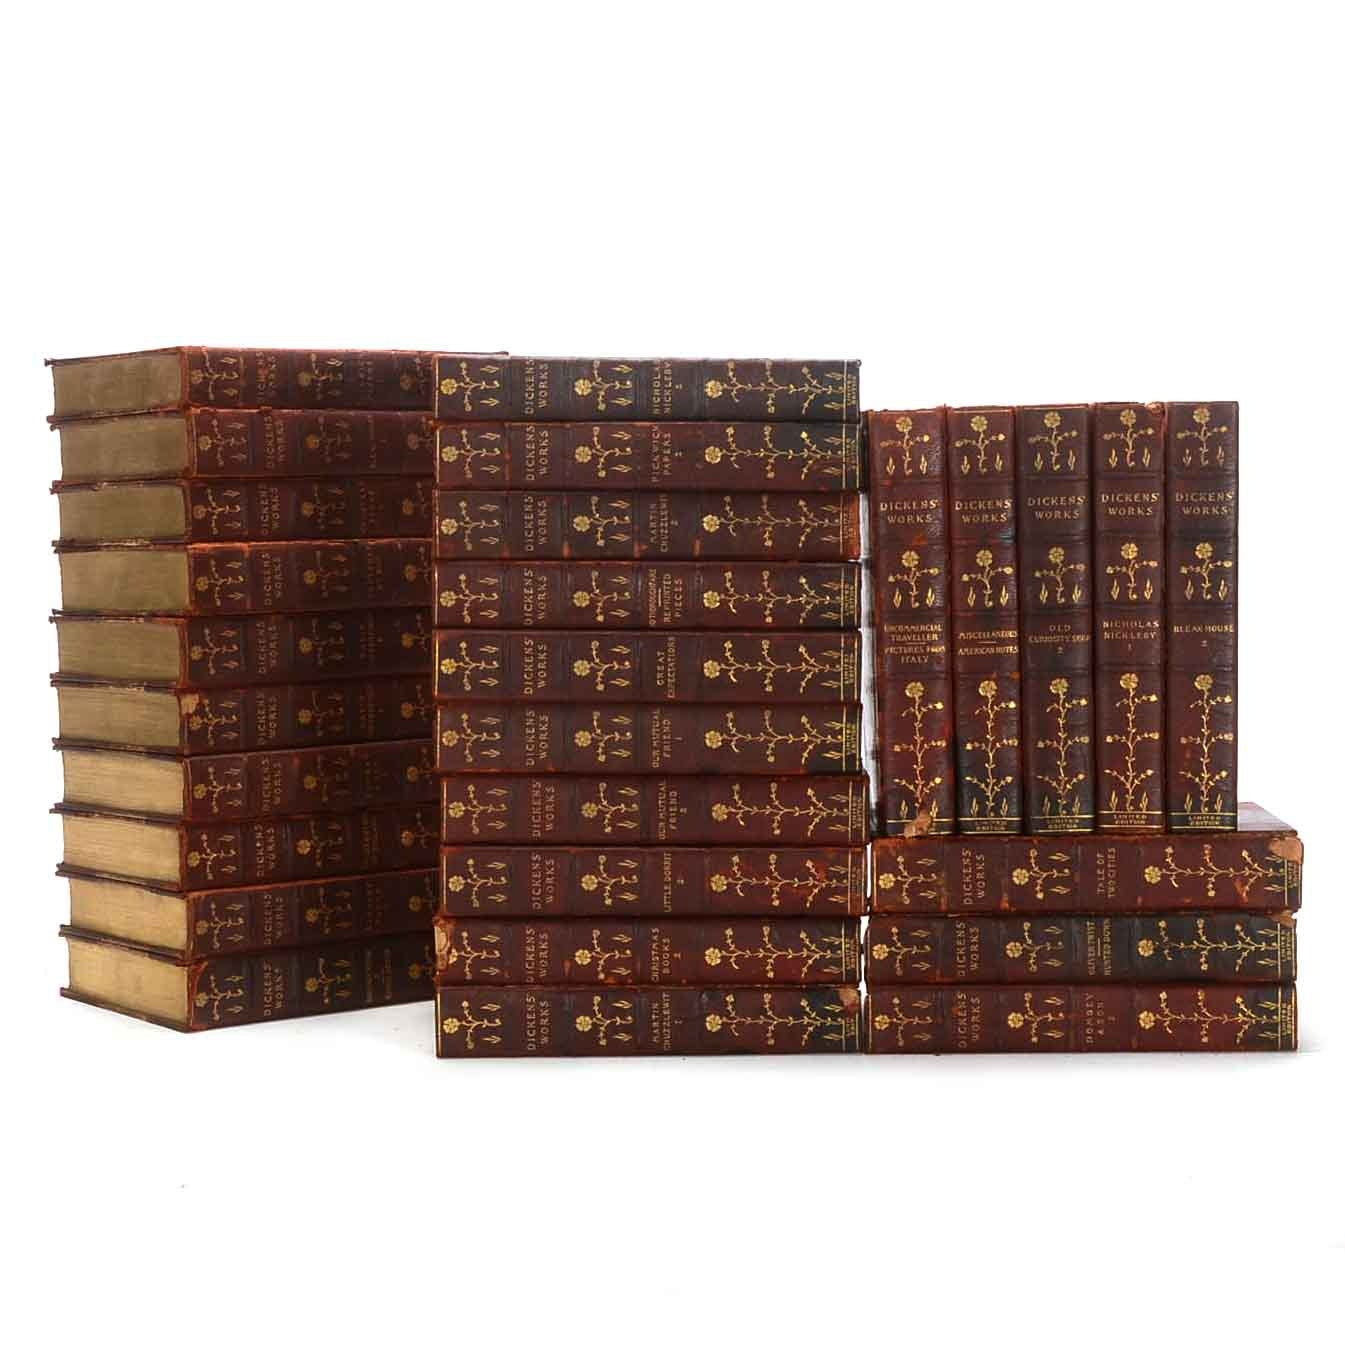 1899 Works of Charles Dickens Twenty-Eight Volume Set